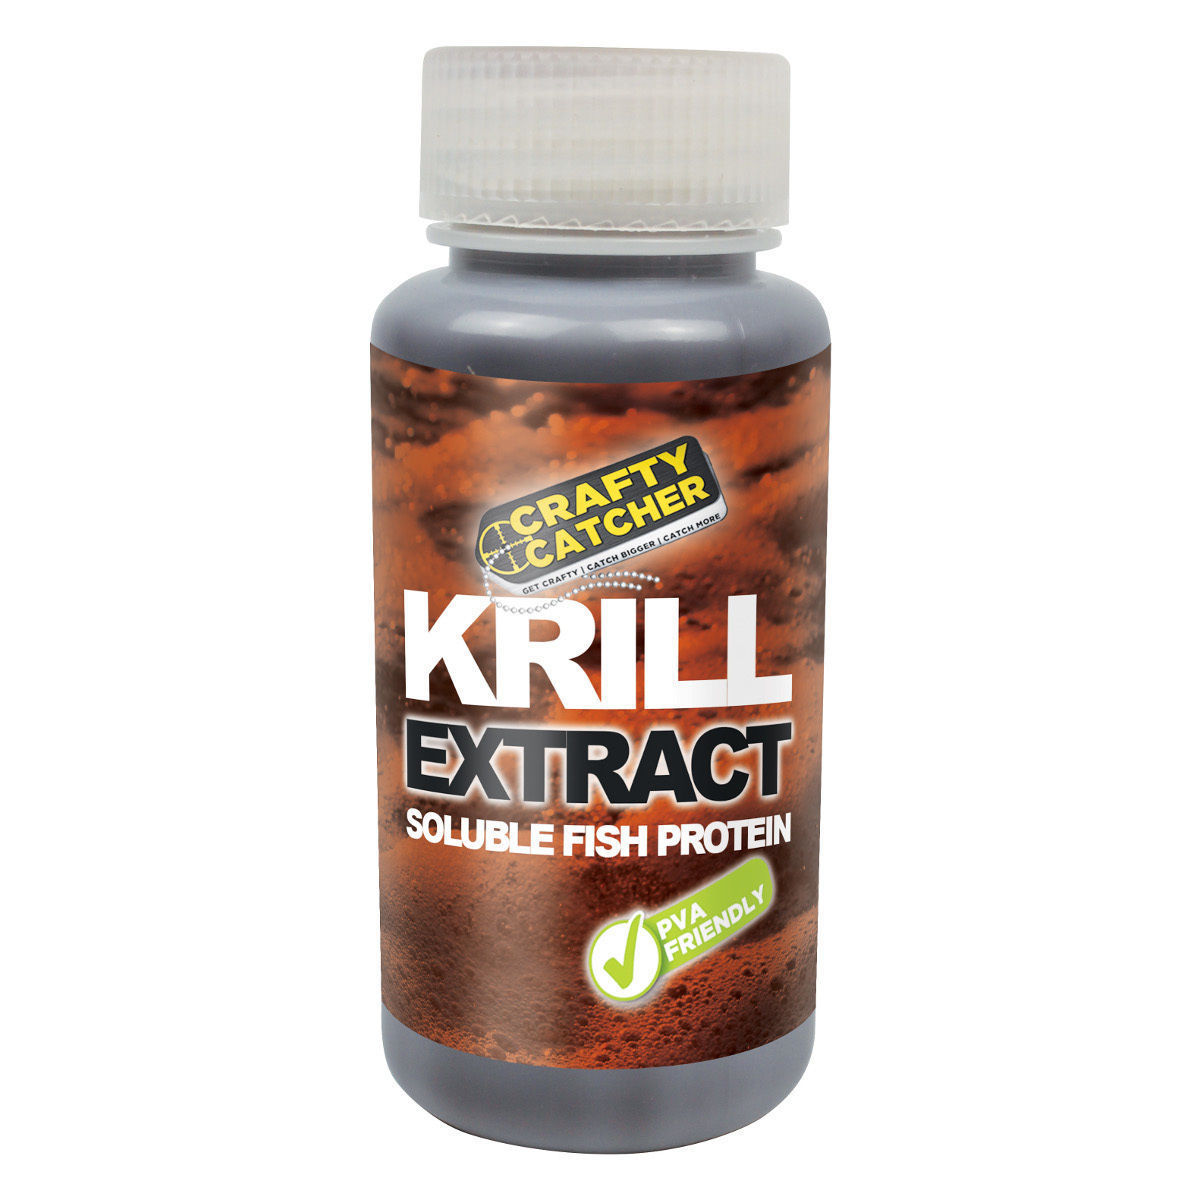 CRAFTY CATCHER KRILL EXTRACT Attractants and Dips Crafty Catcher- GO FISHING TACKLE